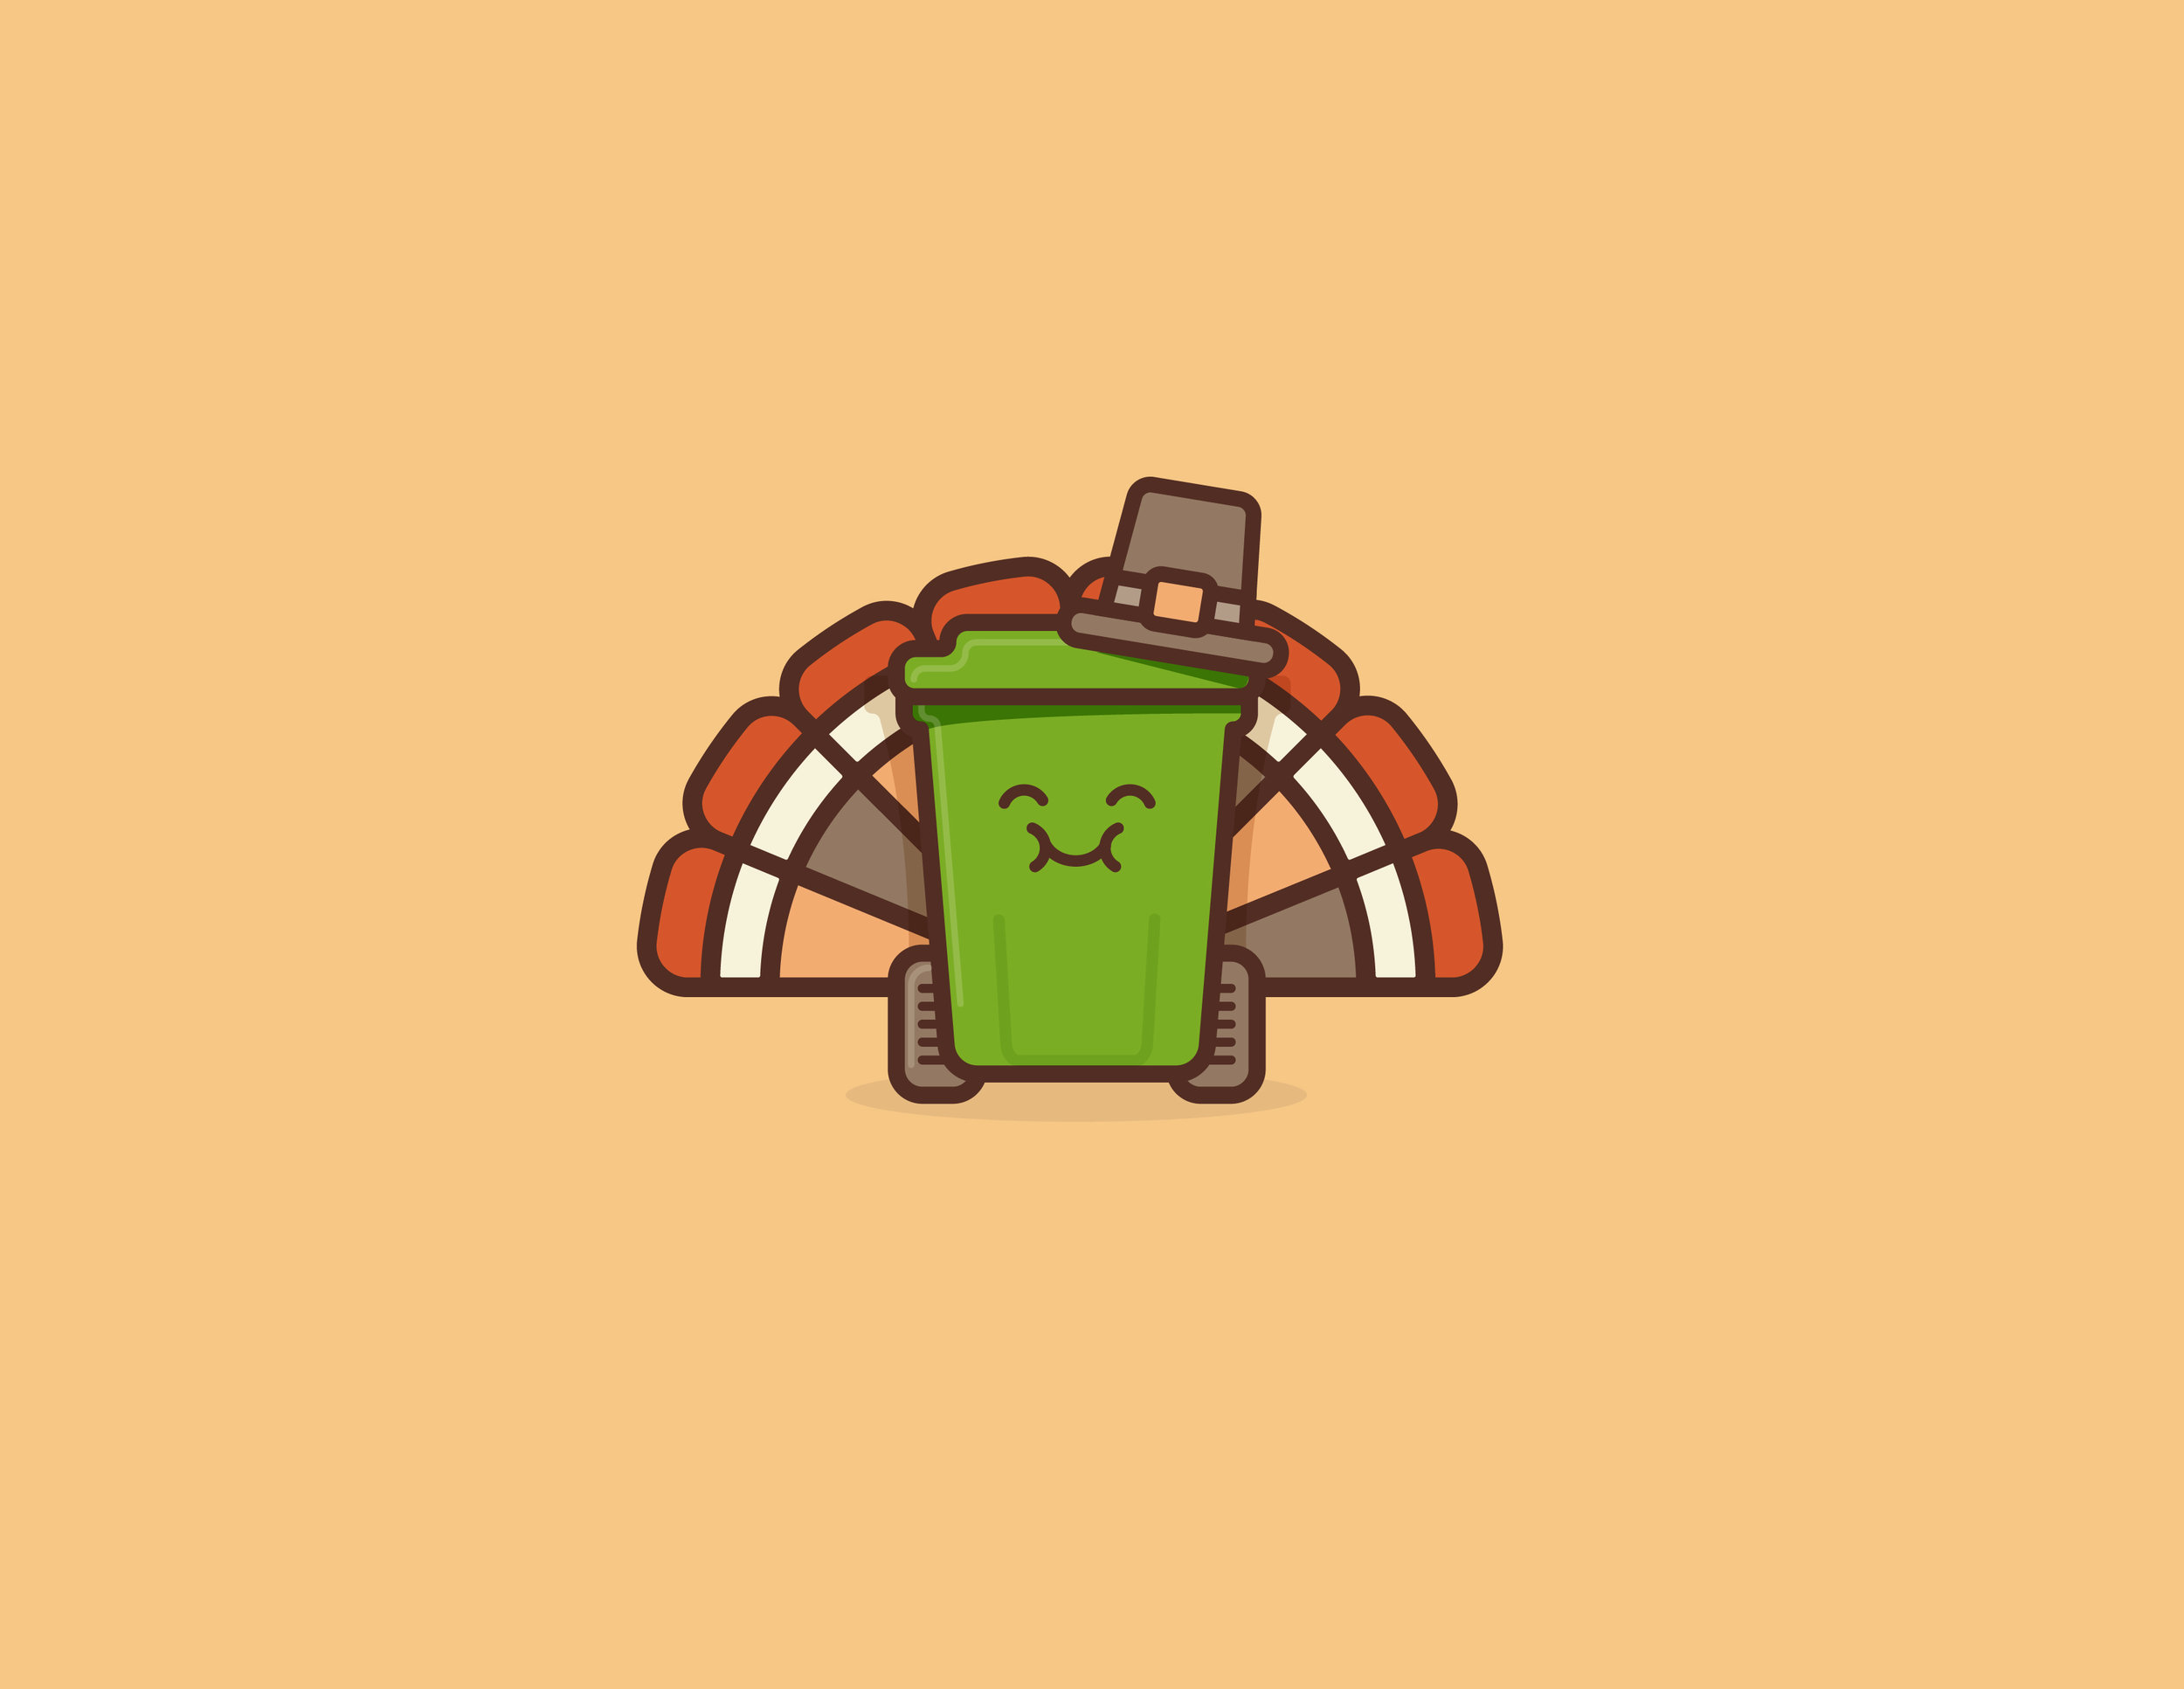 MESCHIERI_ADDY_2018_SCRAPPY_82_ILLUSTRATION_thanksgiving.jpg